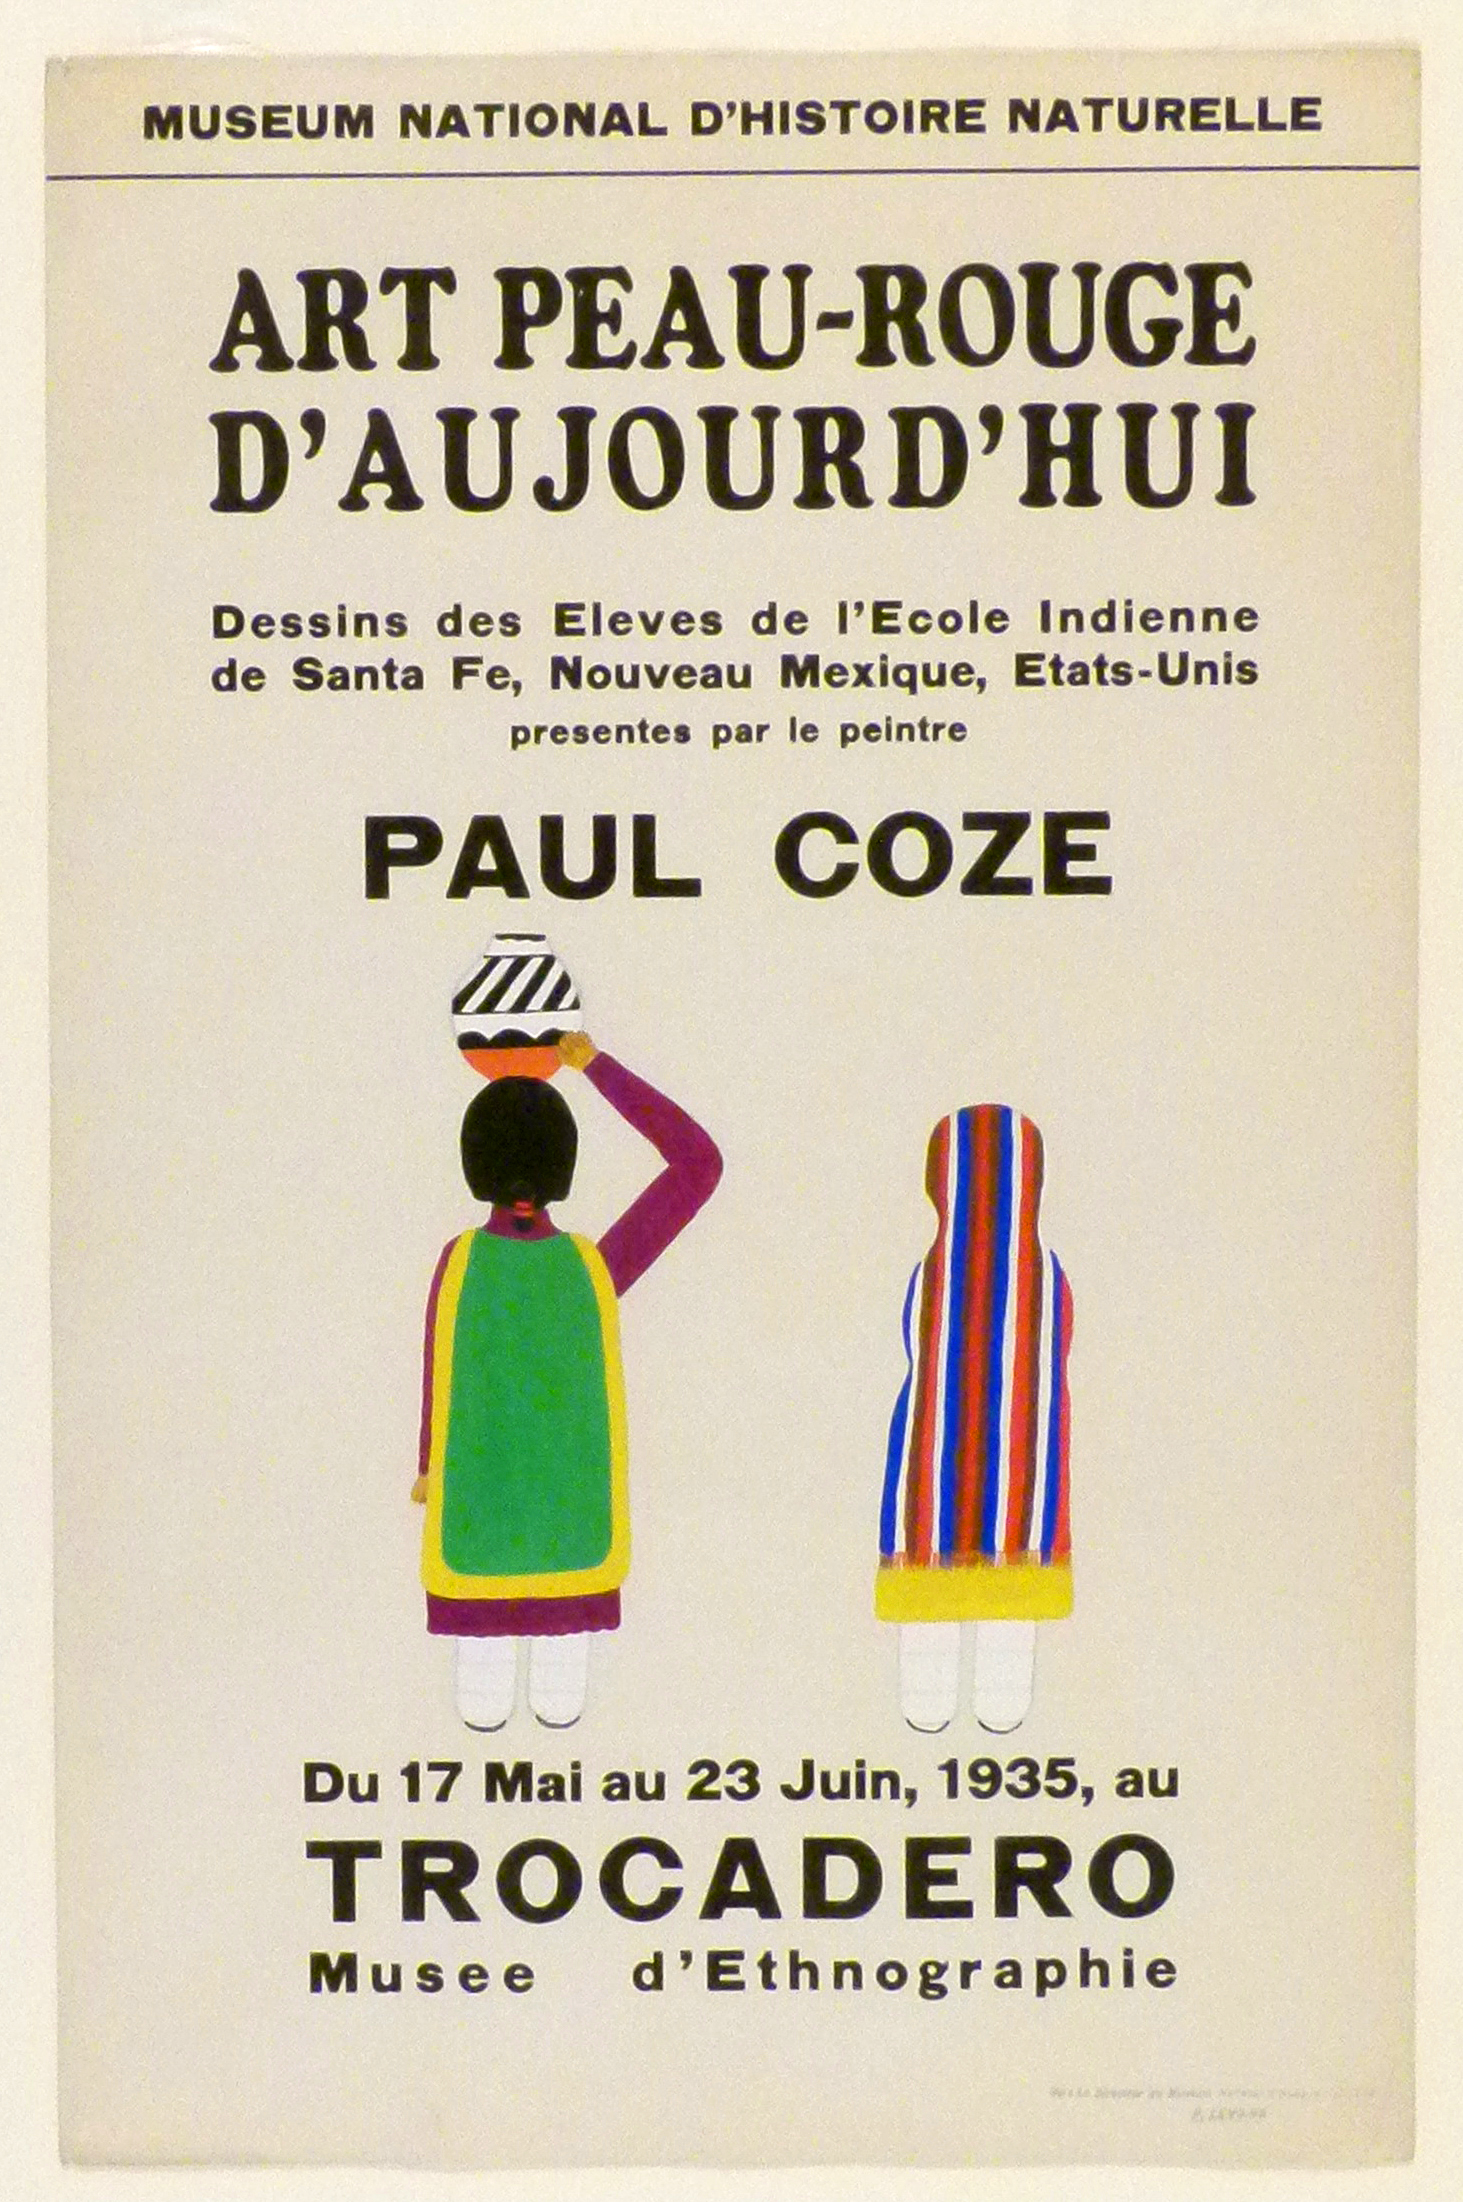 Art Exhibition Poster with painting of two figures viewed from behind. The figure on the left holds a vase on her head. The figure on the right is covered in colorful vertical stripes.